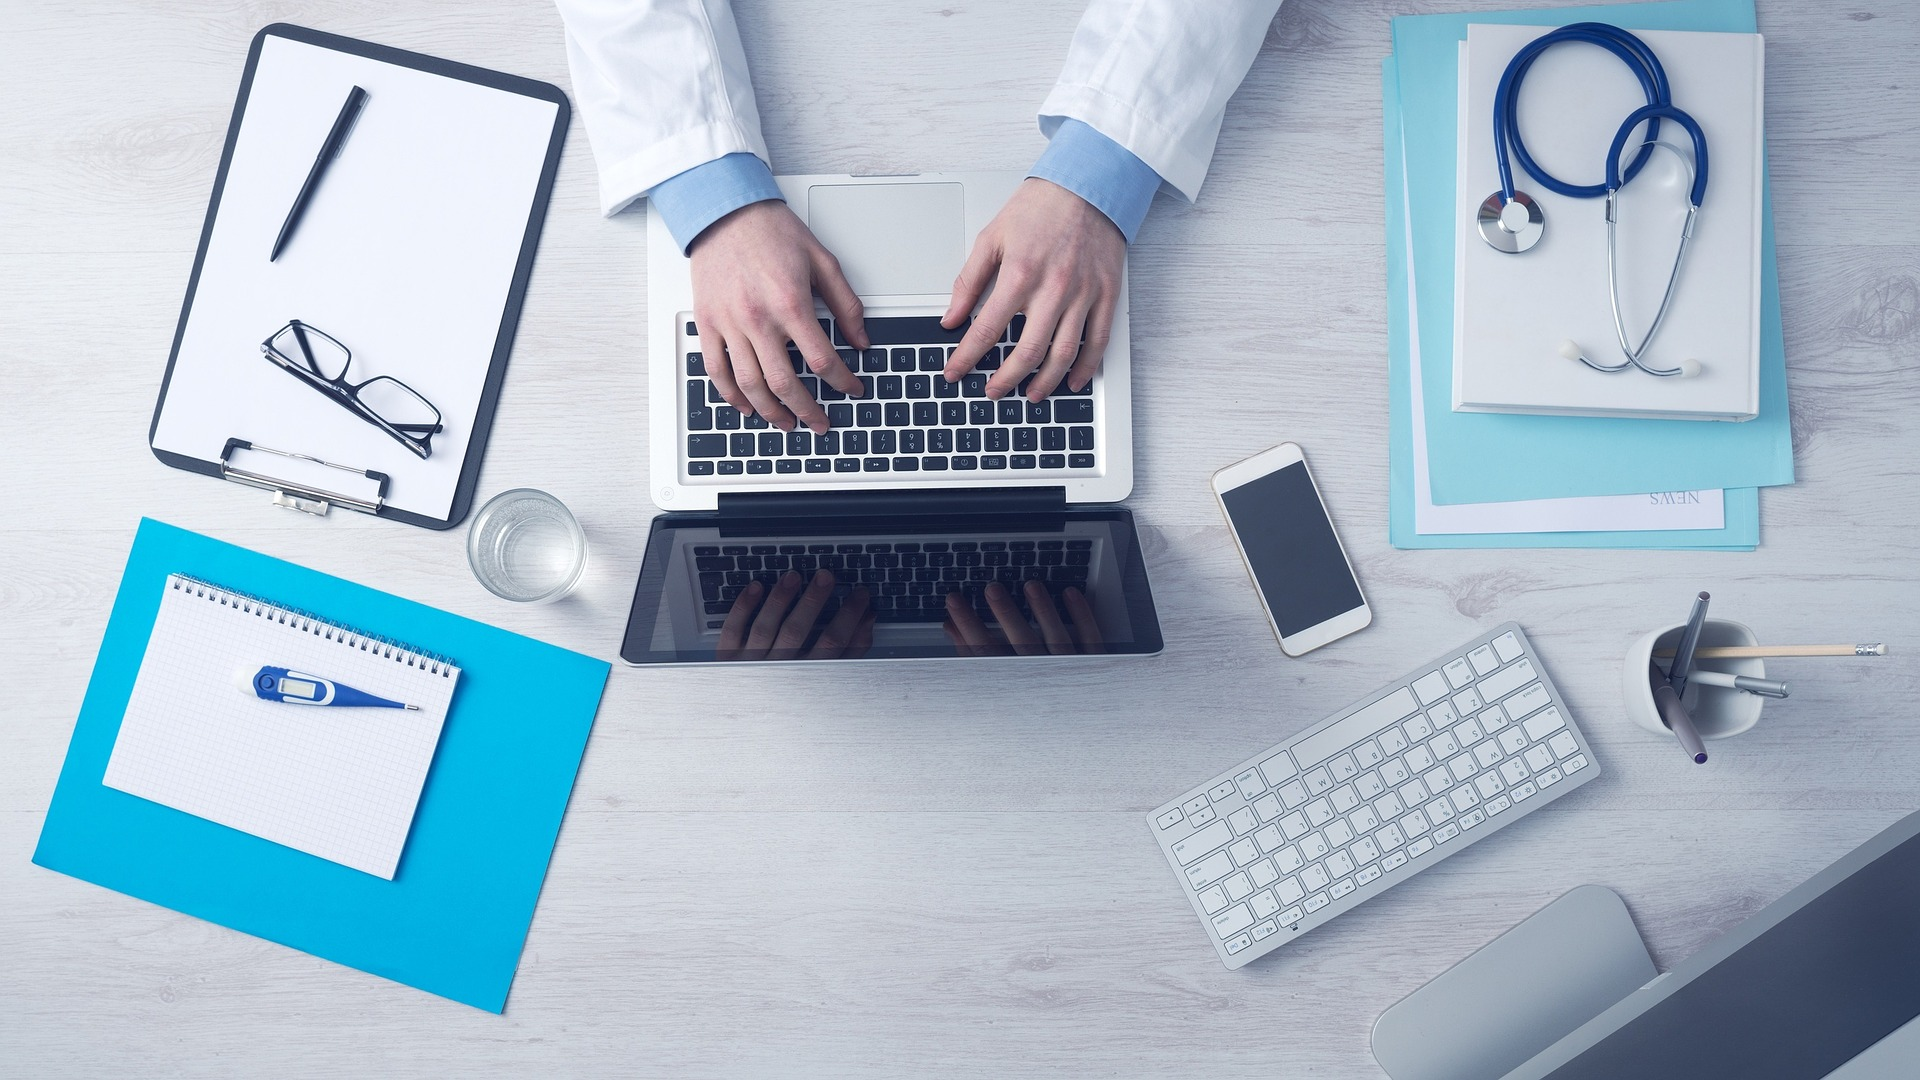 Hands typing on a laptop surrounded by medical equipment